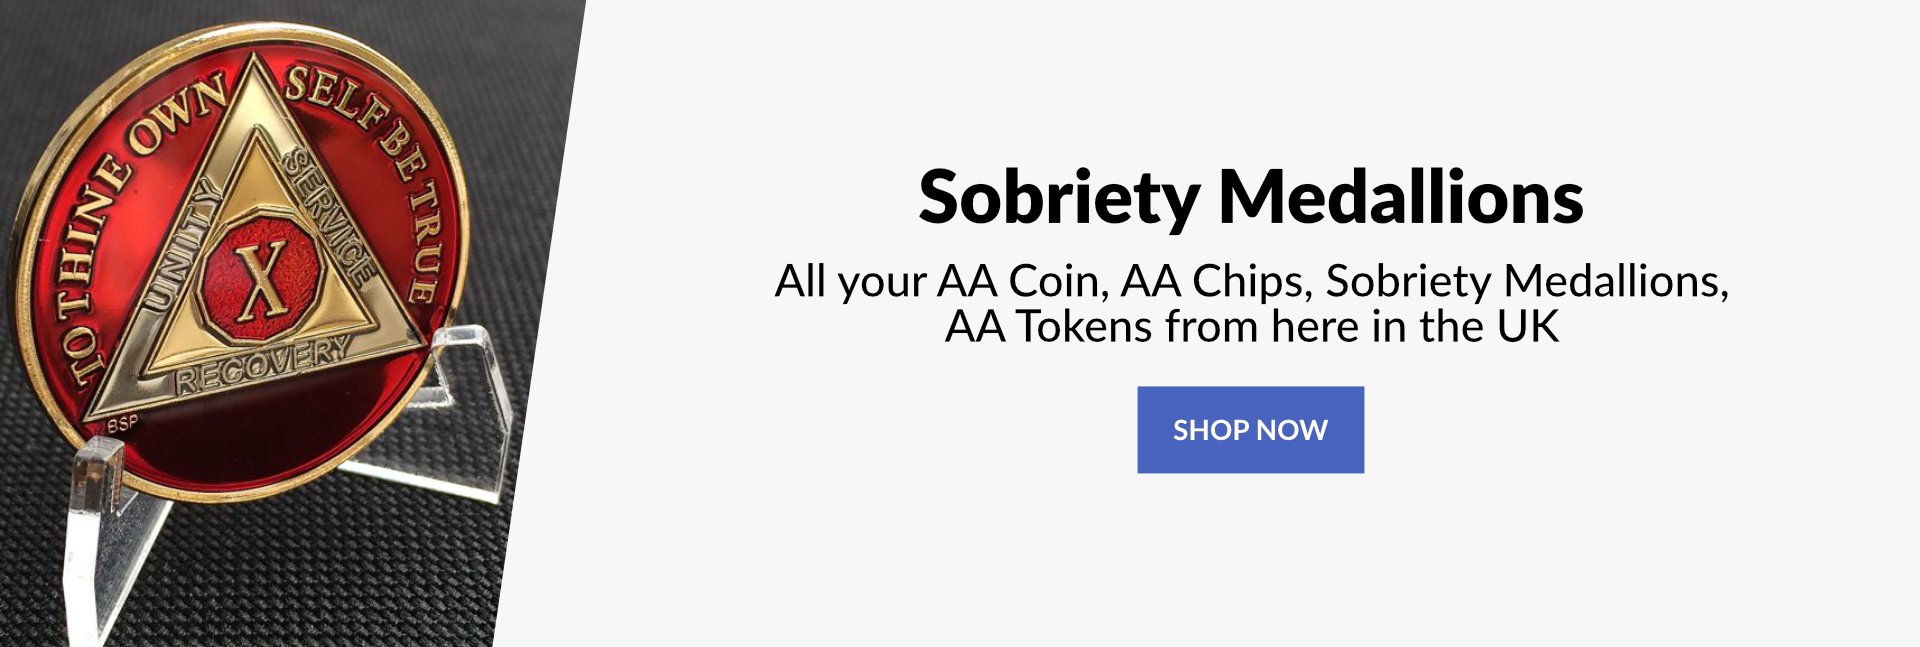 Aa Coins Uk Sobreity Medallions Uk Aa Chips Uk Recovery12